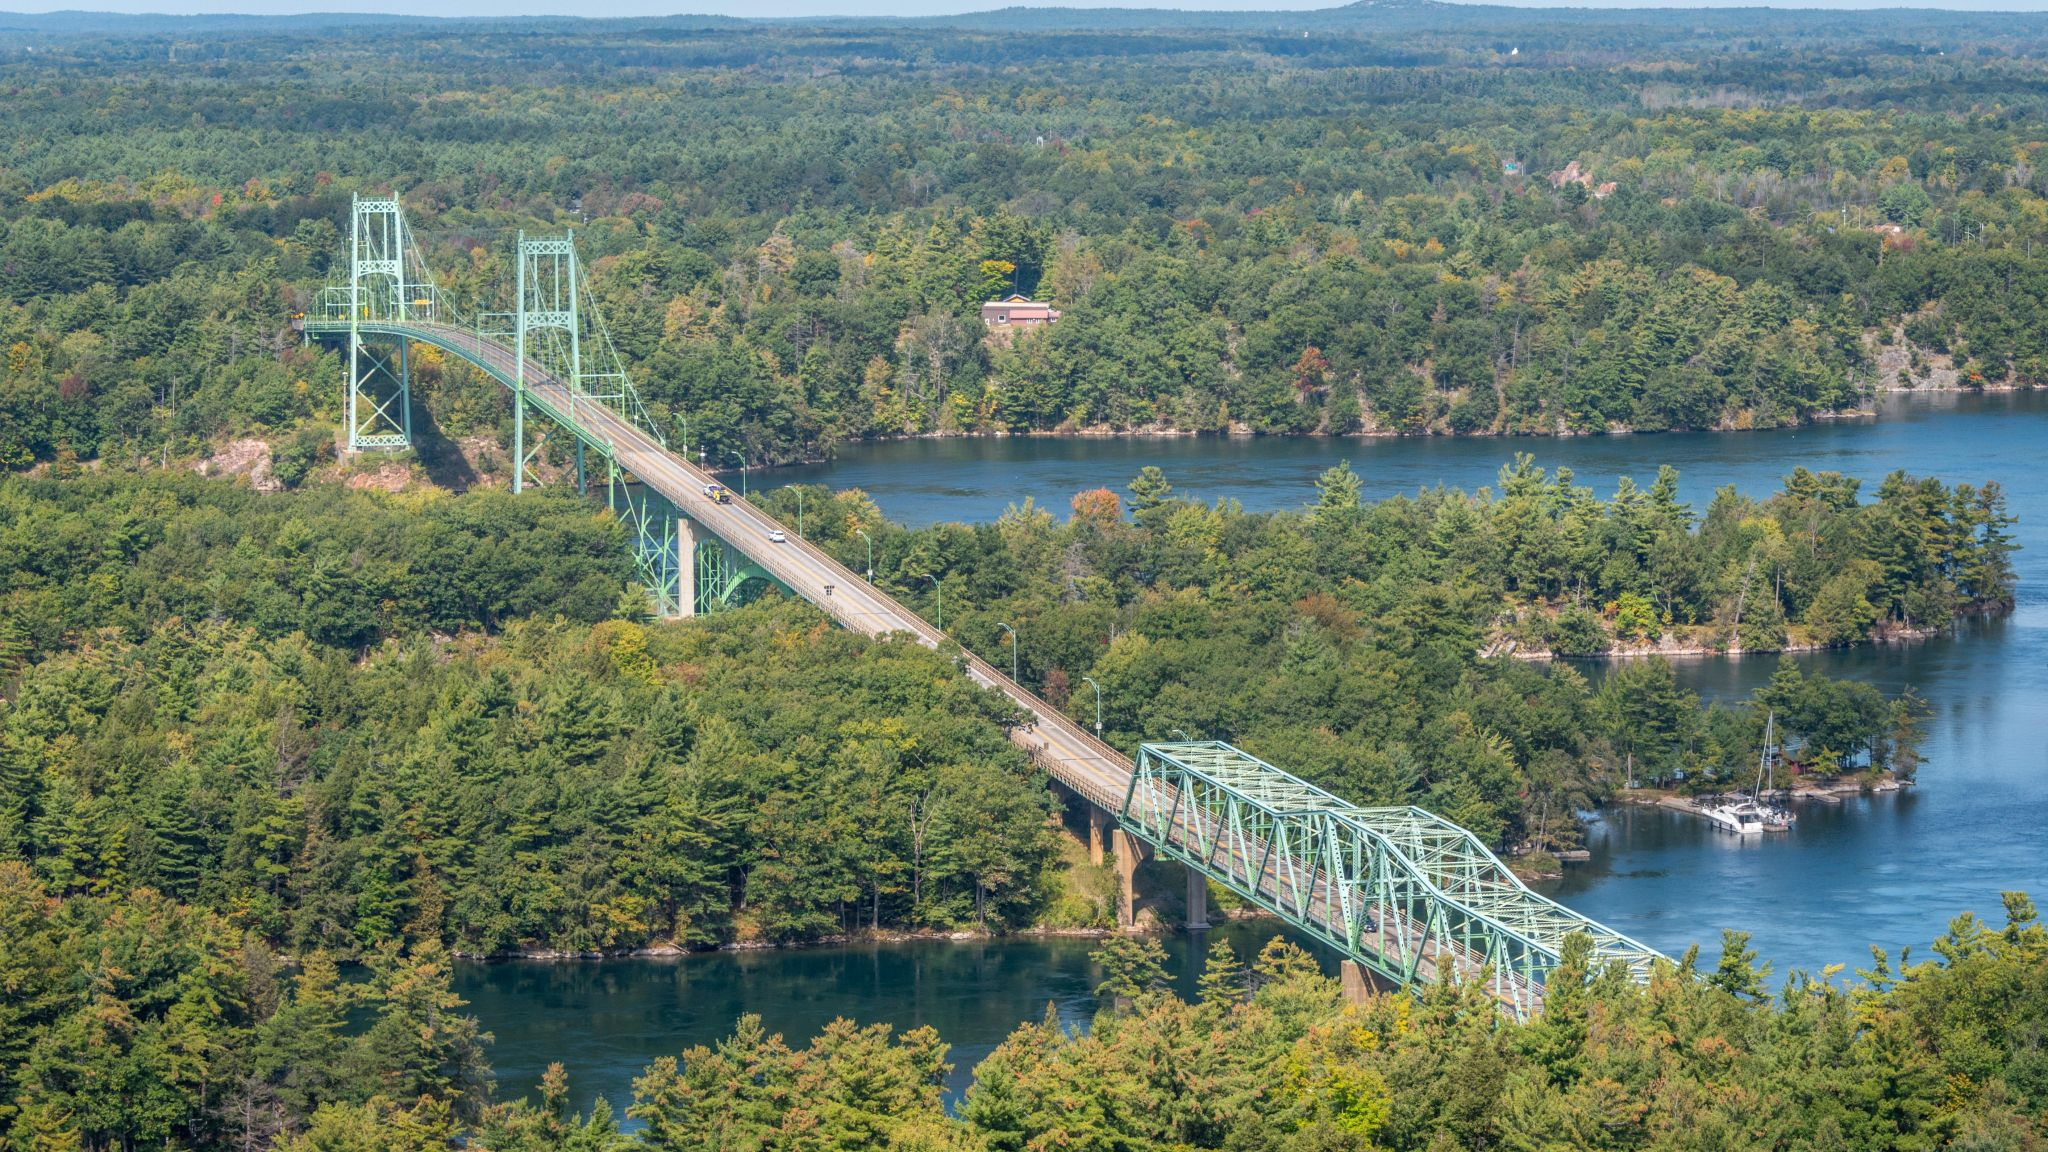 1000 Islands Observation Tower & 1000 Islands Parkway, Canada